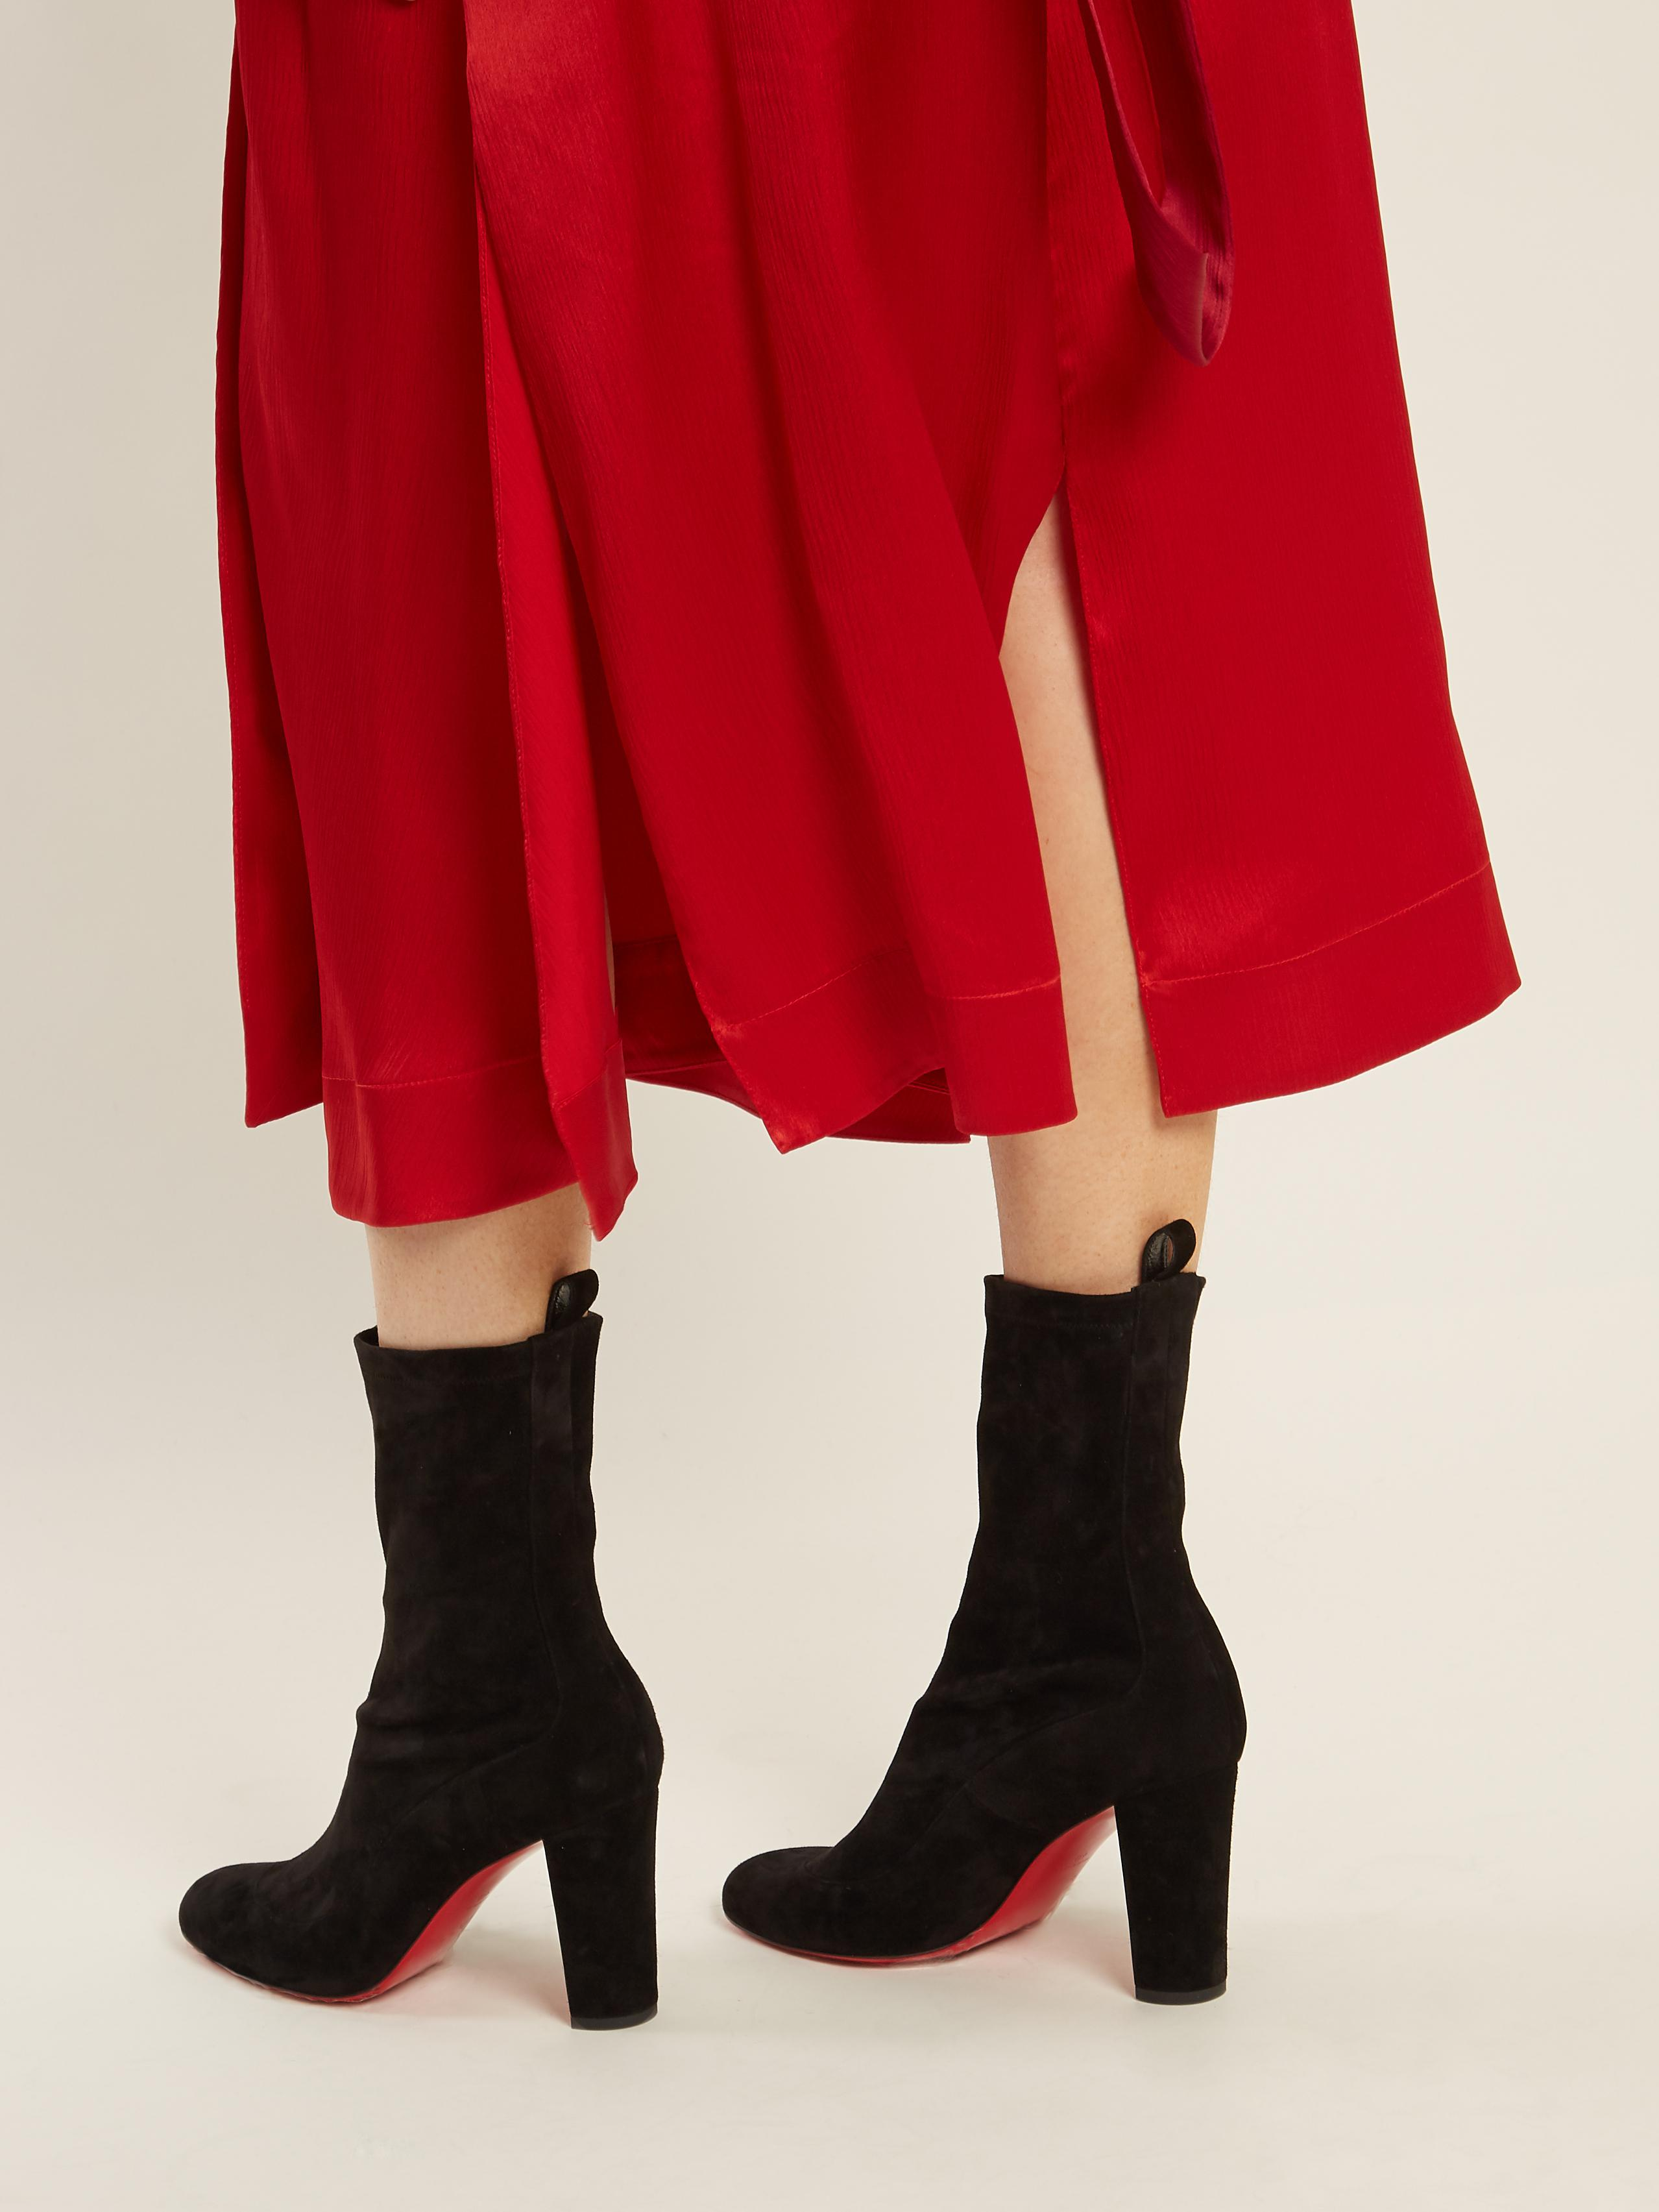 best service 7d9a3 fc983 Christian Louboutin Gena Suede Ankle Boots in Black - Lyst